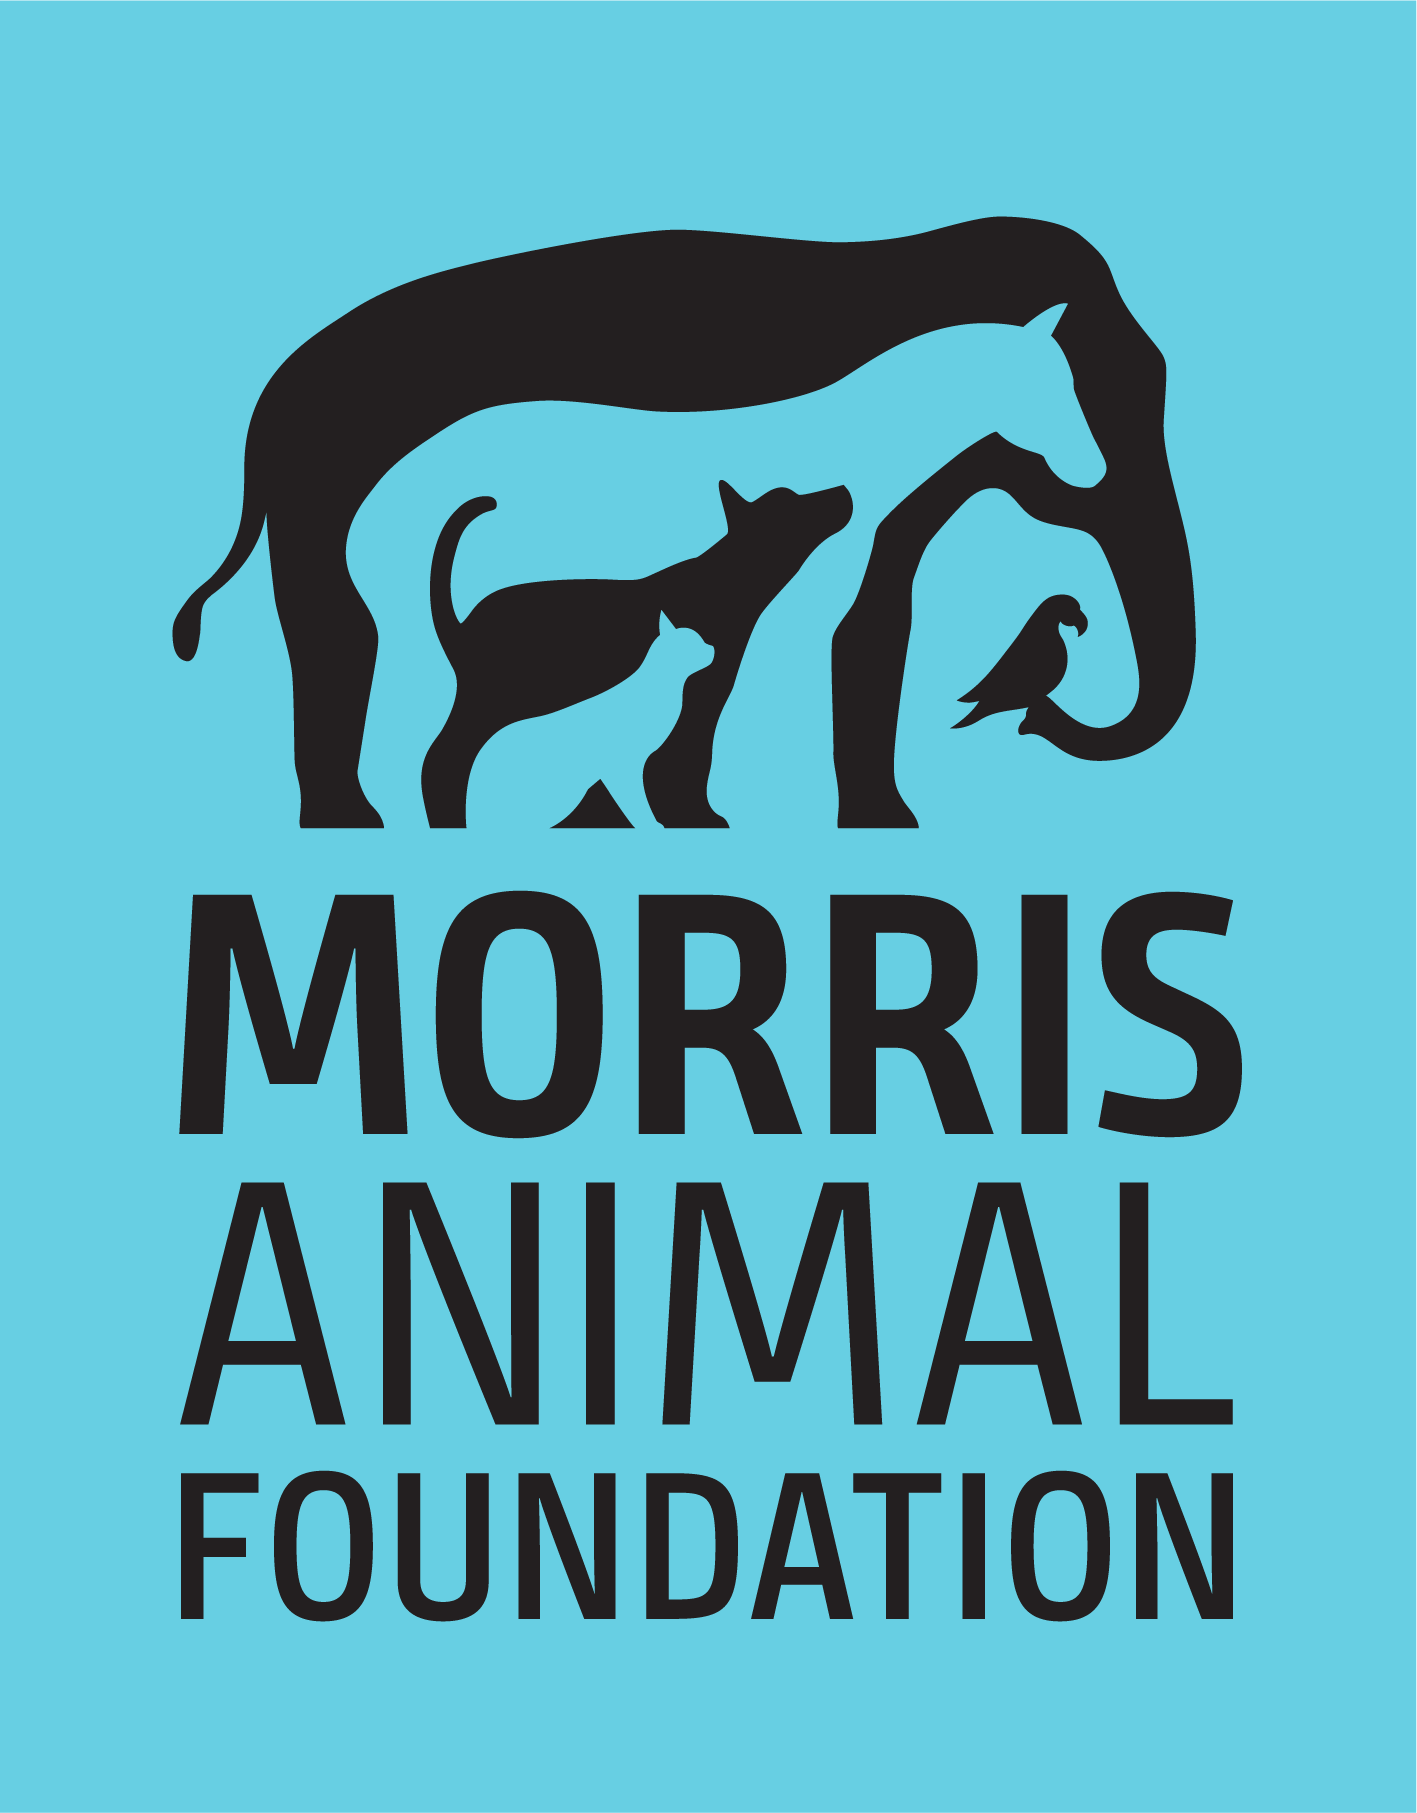 Home Morris Animal Foundation logo light blue